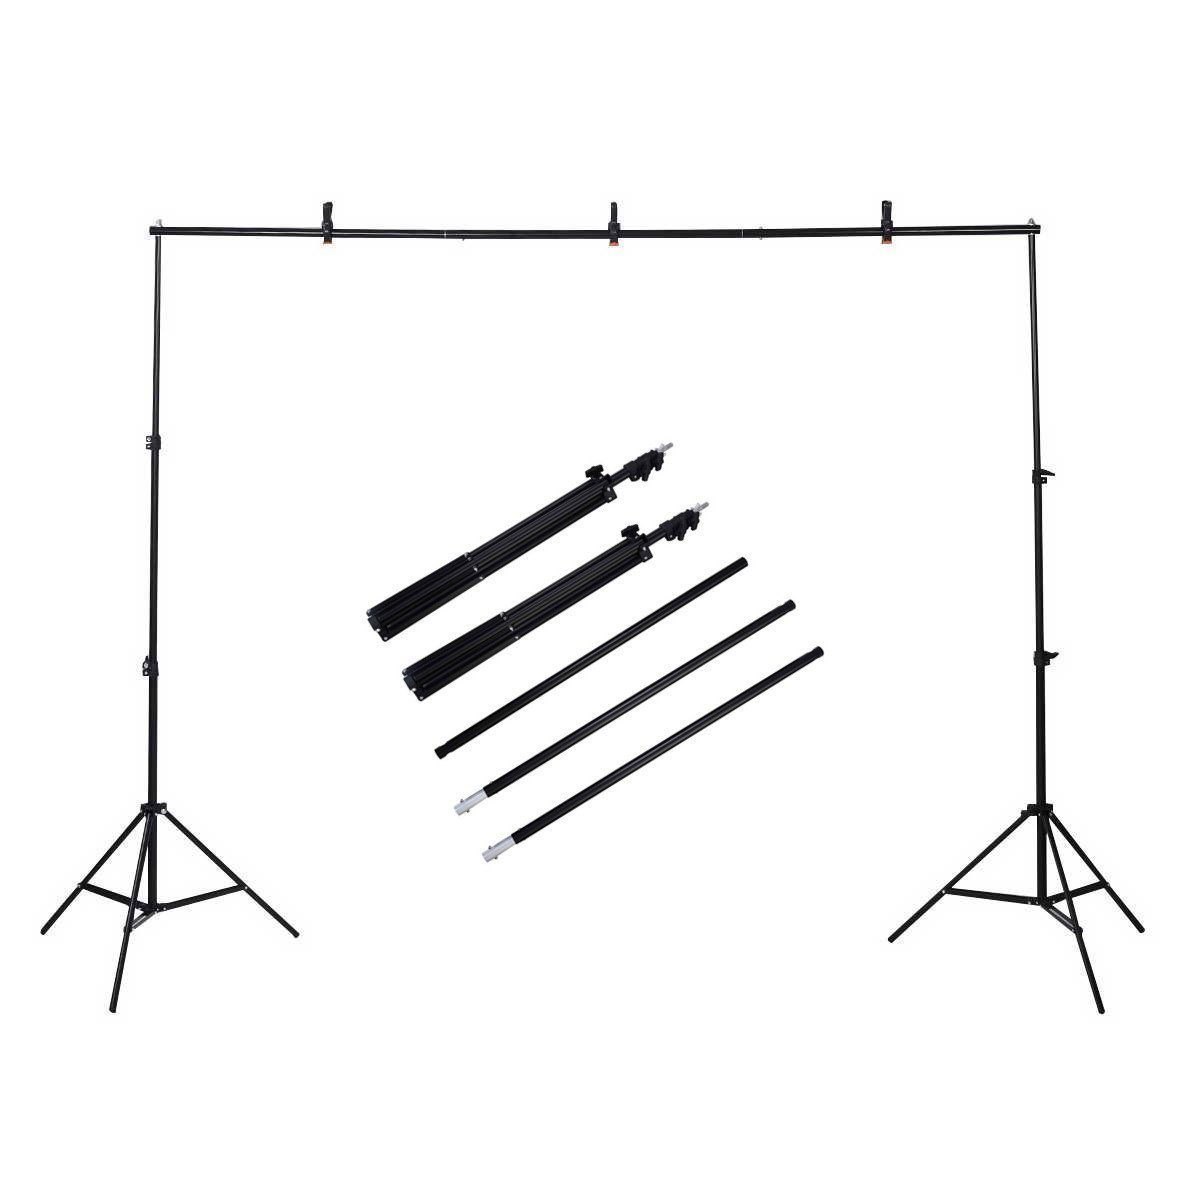 Safstar Background Stand Backdrop Support System Kit, 10 x 6.5ft(3 x 2M) with Portable Carrying Bag and Clamps for Video, Portrait, and Product Photography by S AFSTAR